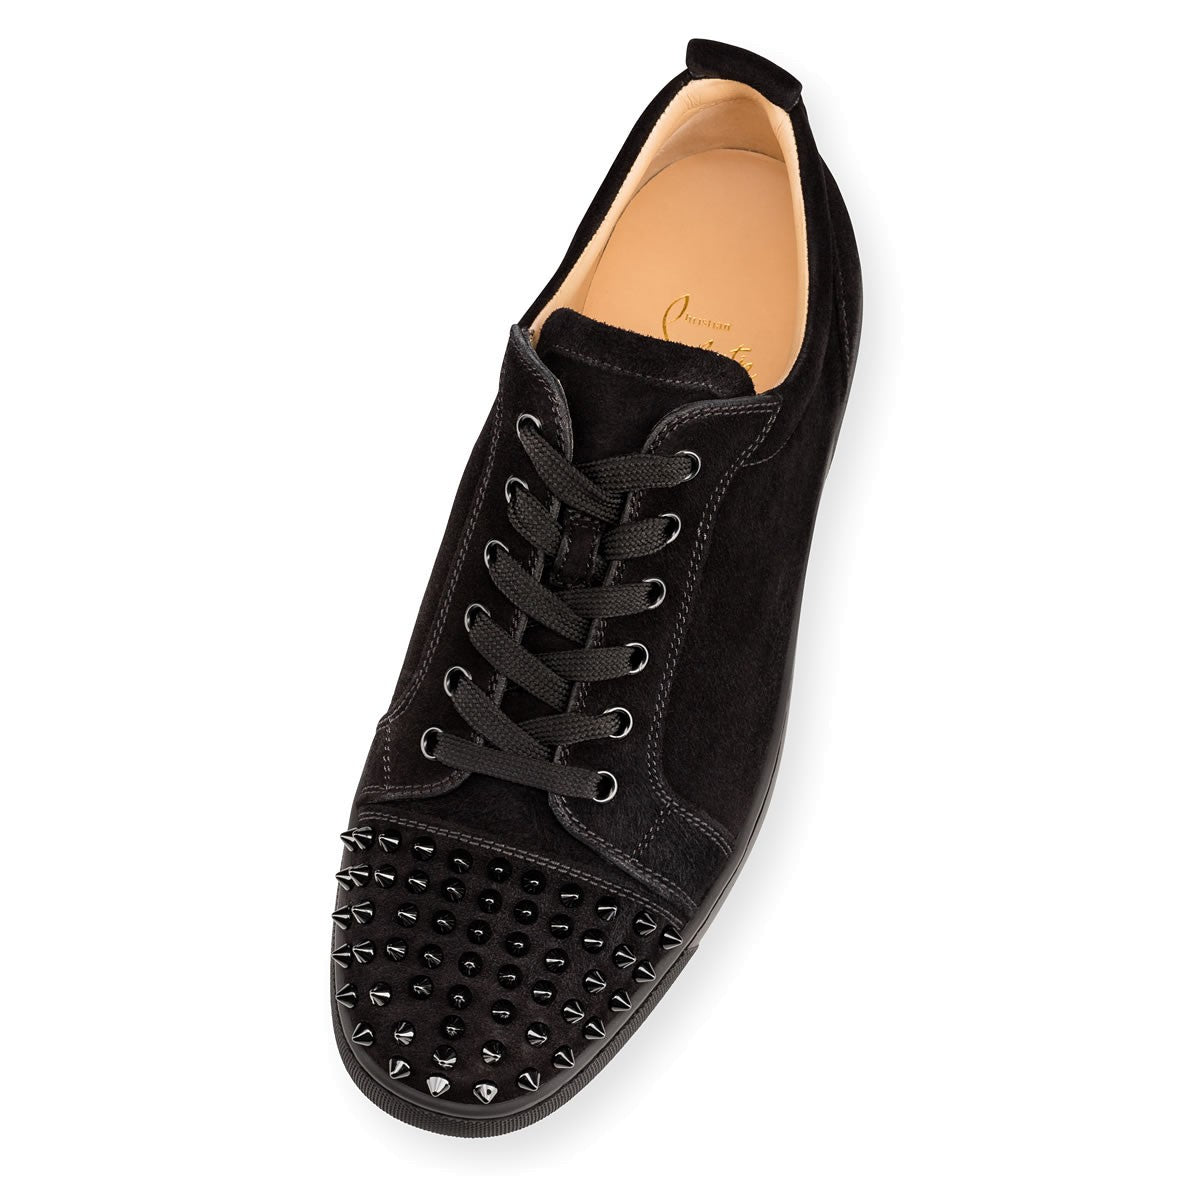 e1499e25615 Low Top Louboutin Sneakers · Low Top Louboutin Sneakers ...